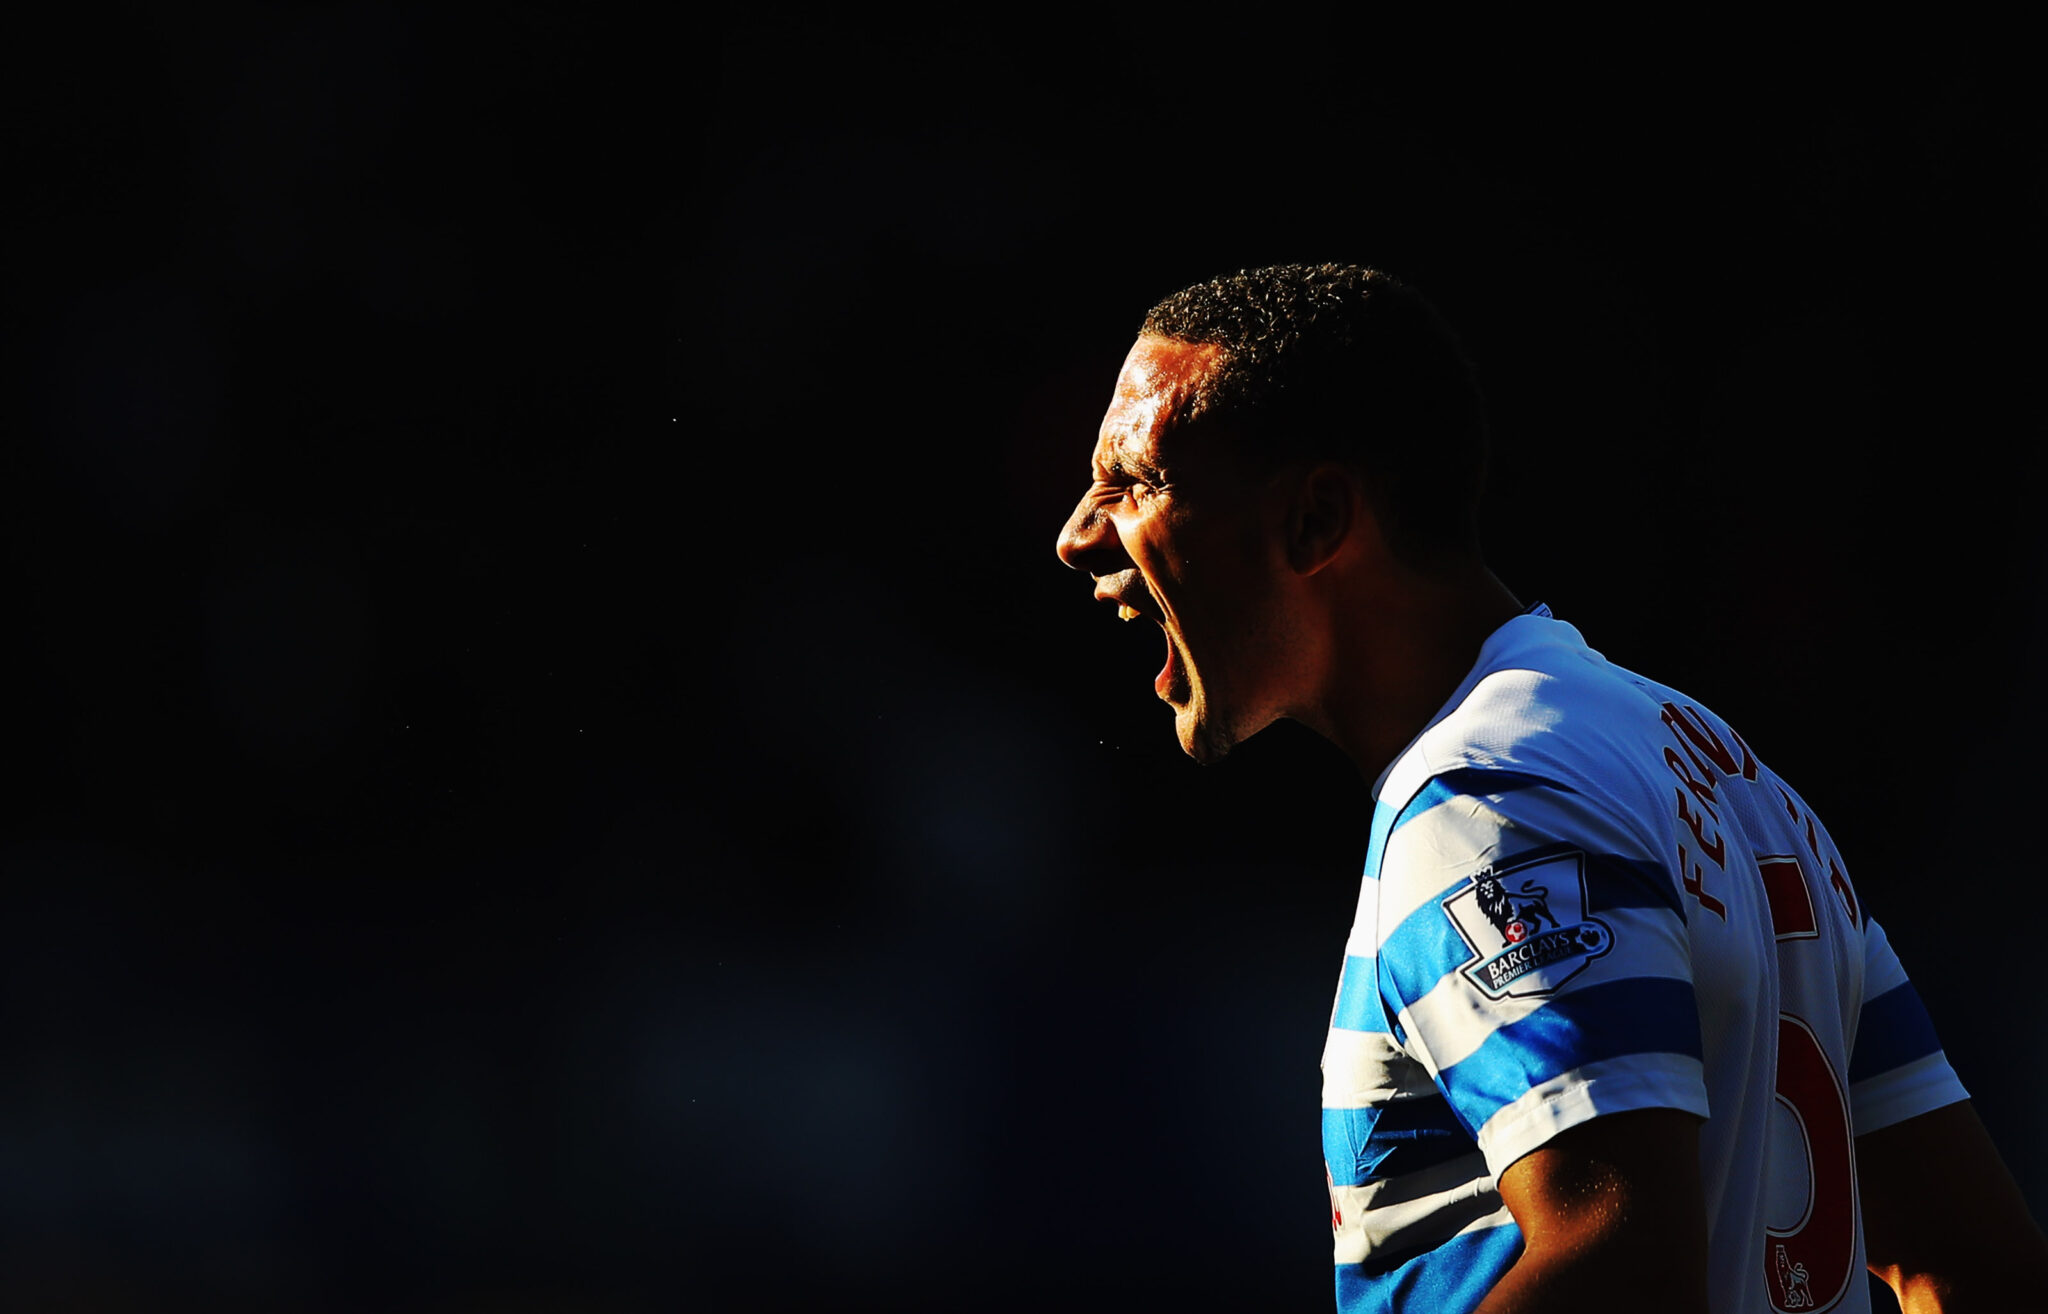 Rio Ferdinand QPR - Foto Paul Gilham Getty Images OneFootball